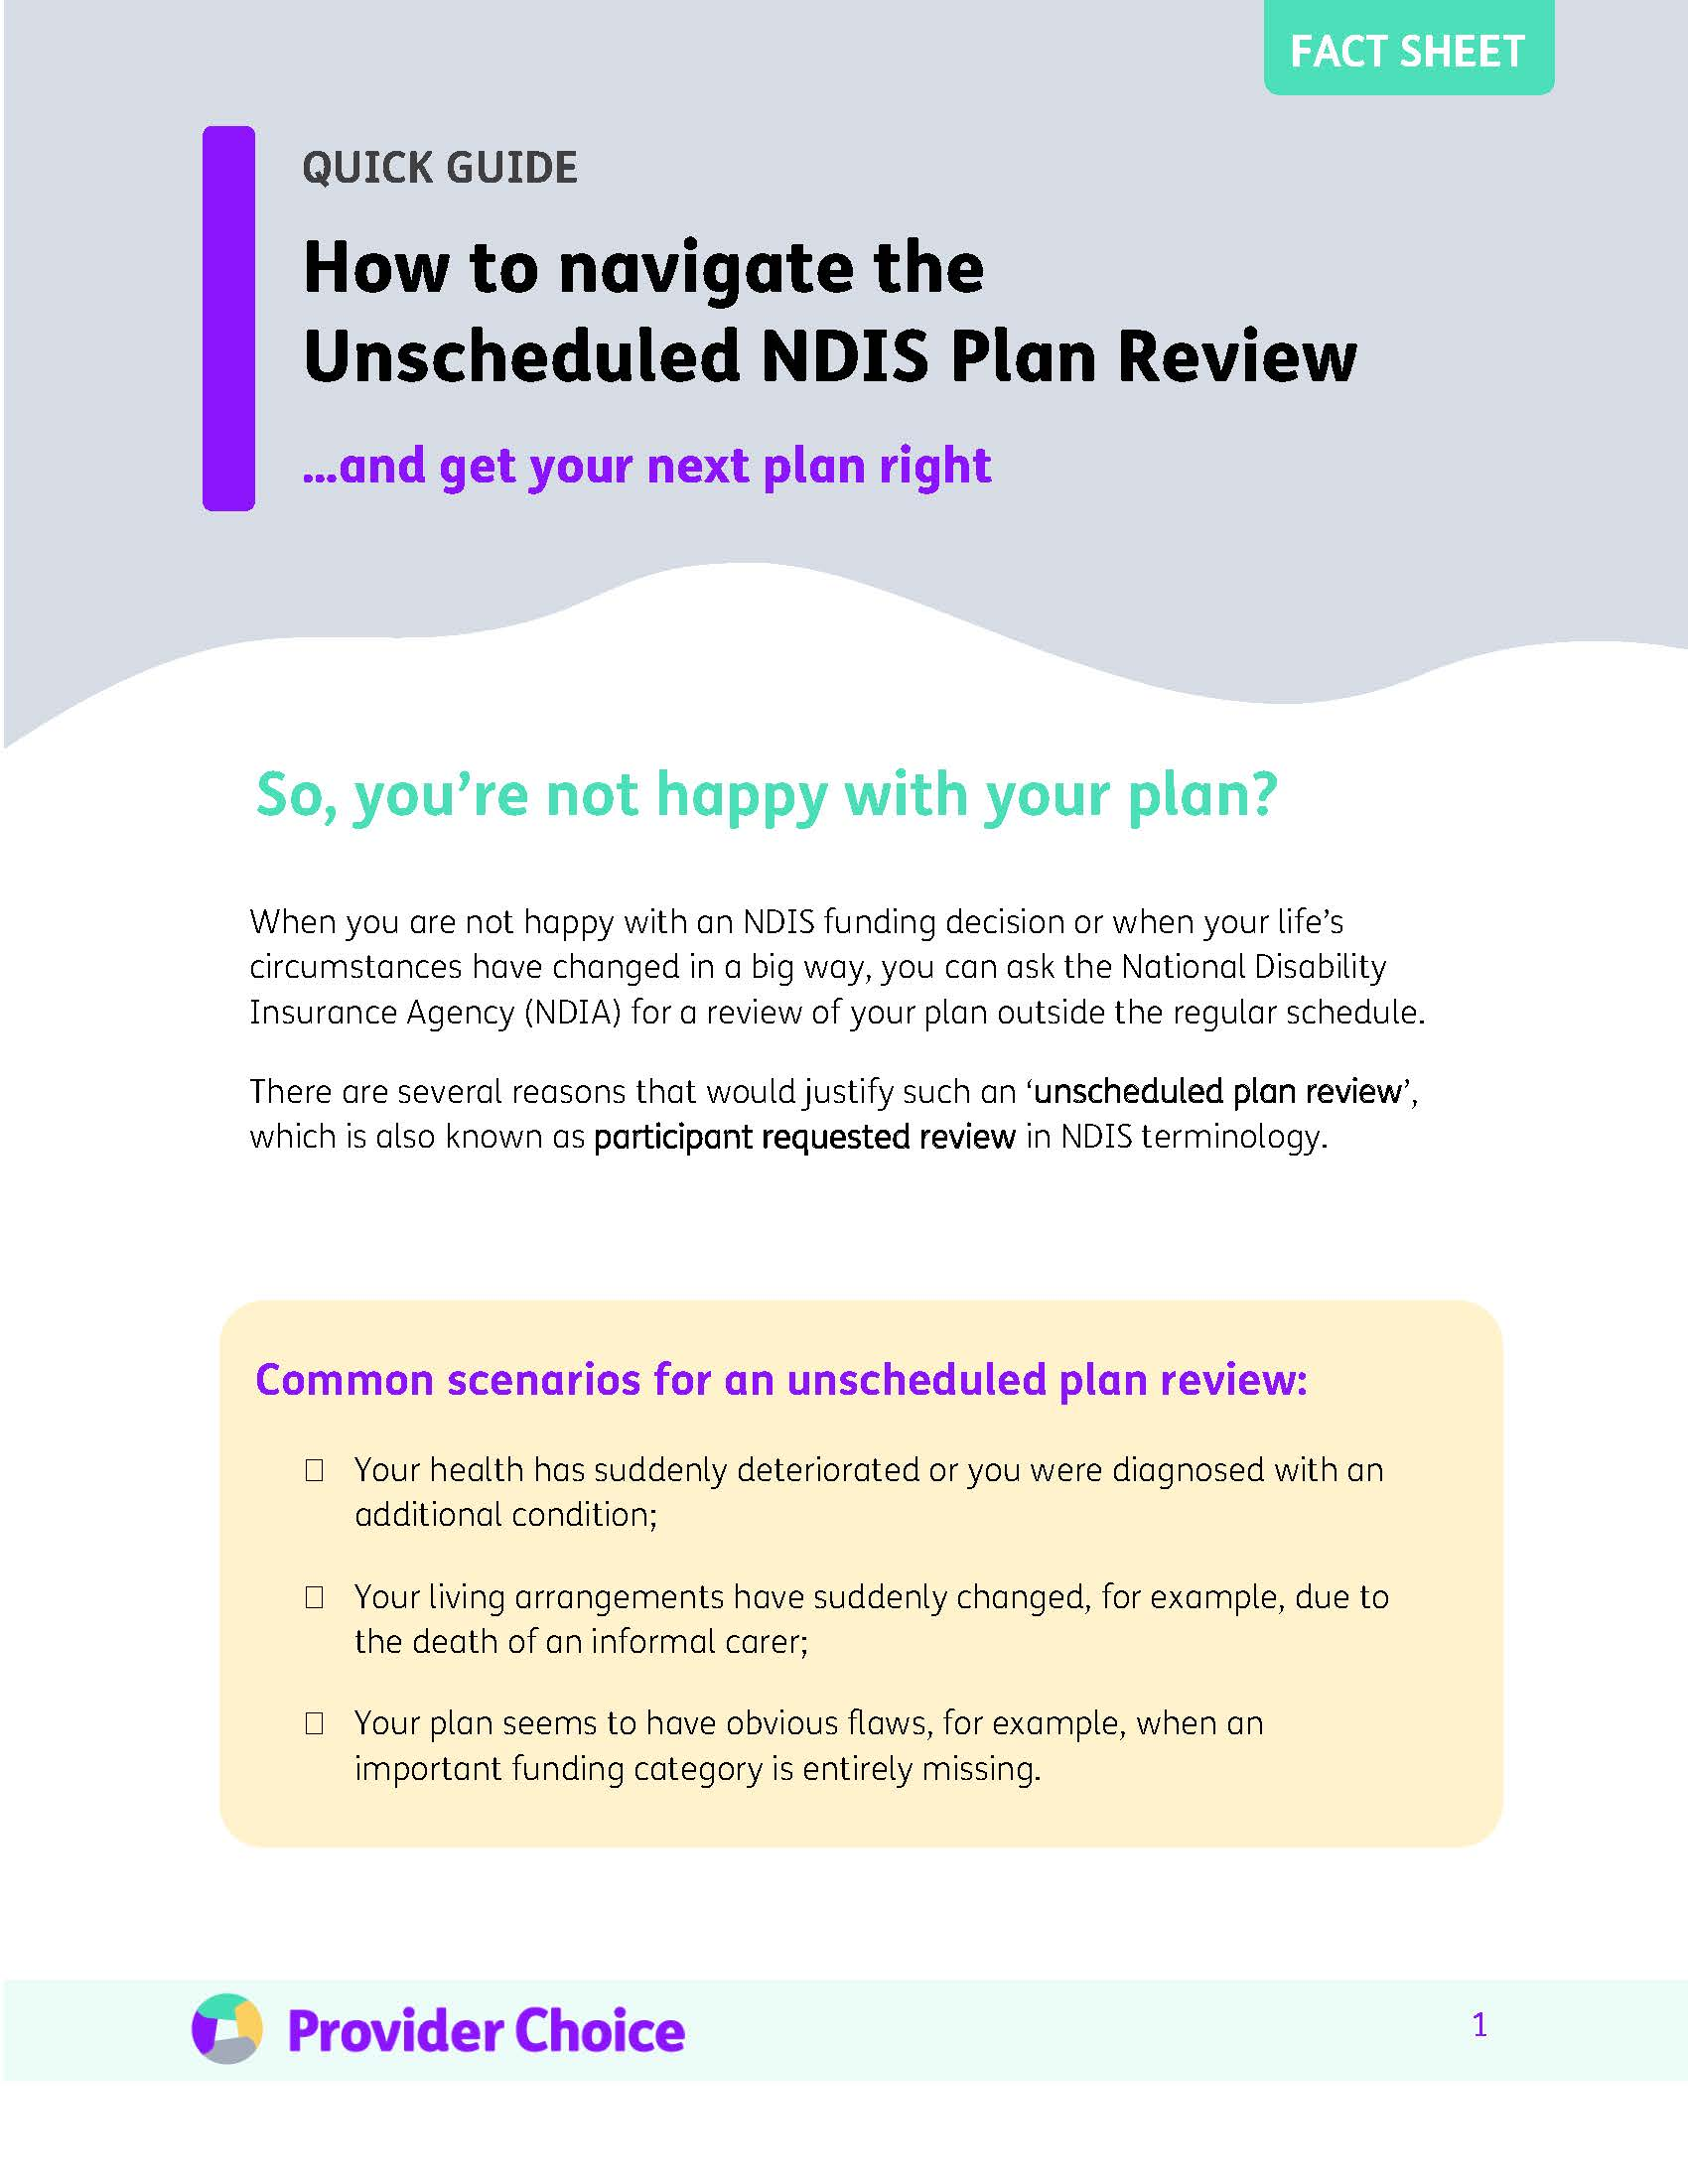 Factsheet: How to navigate the unscheduled plan review